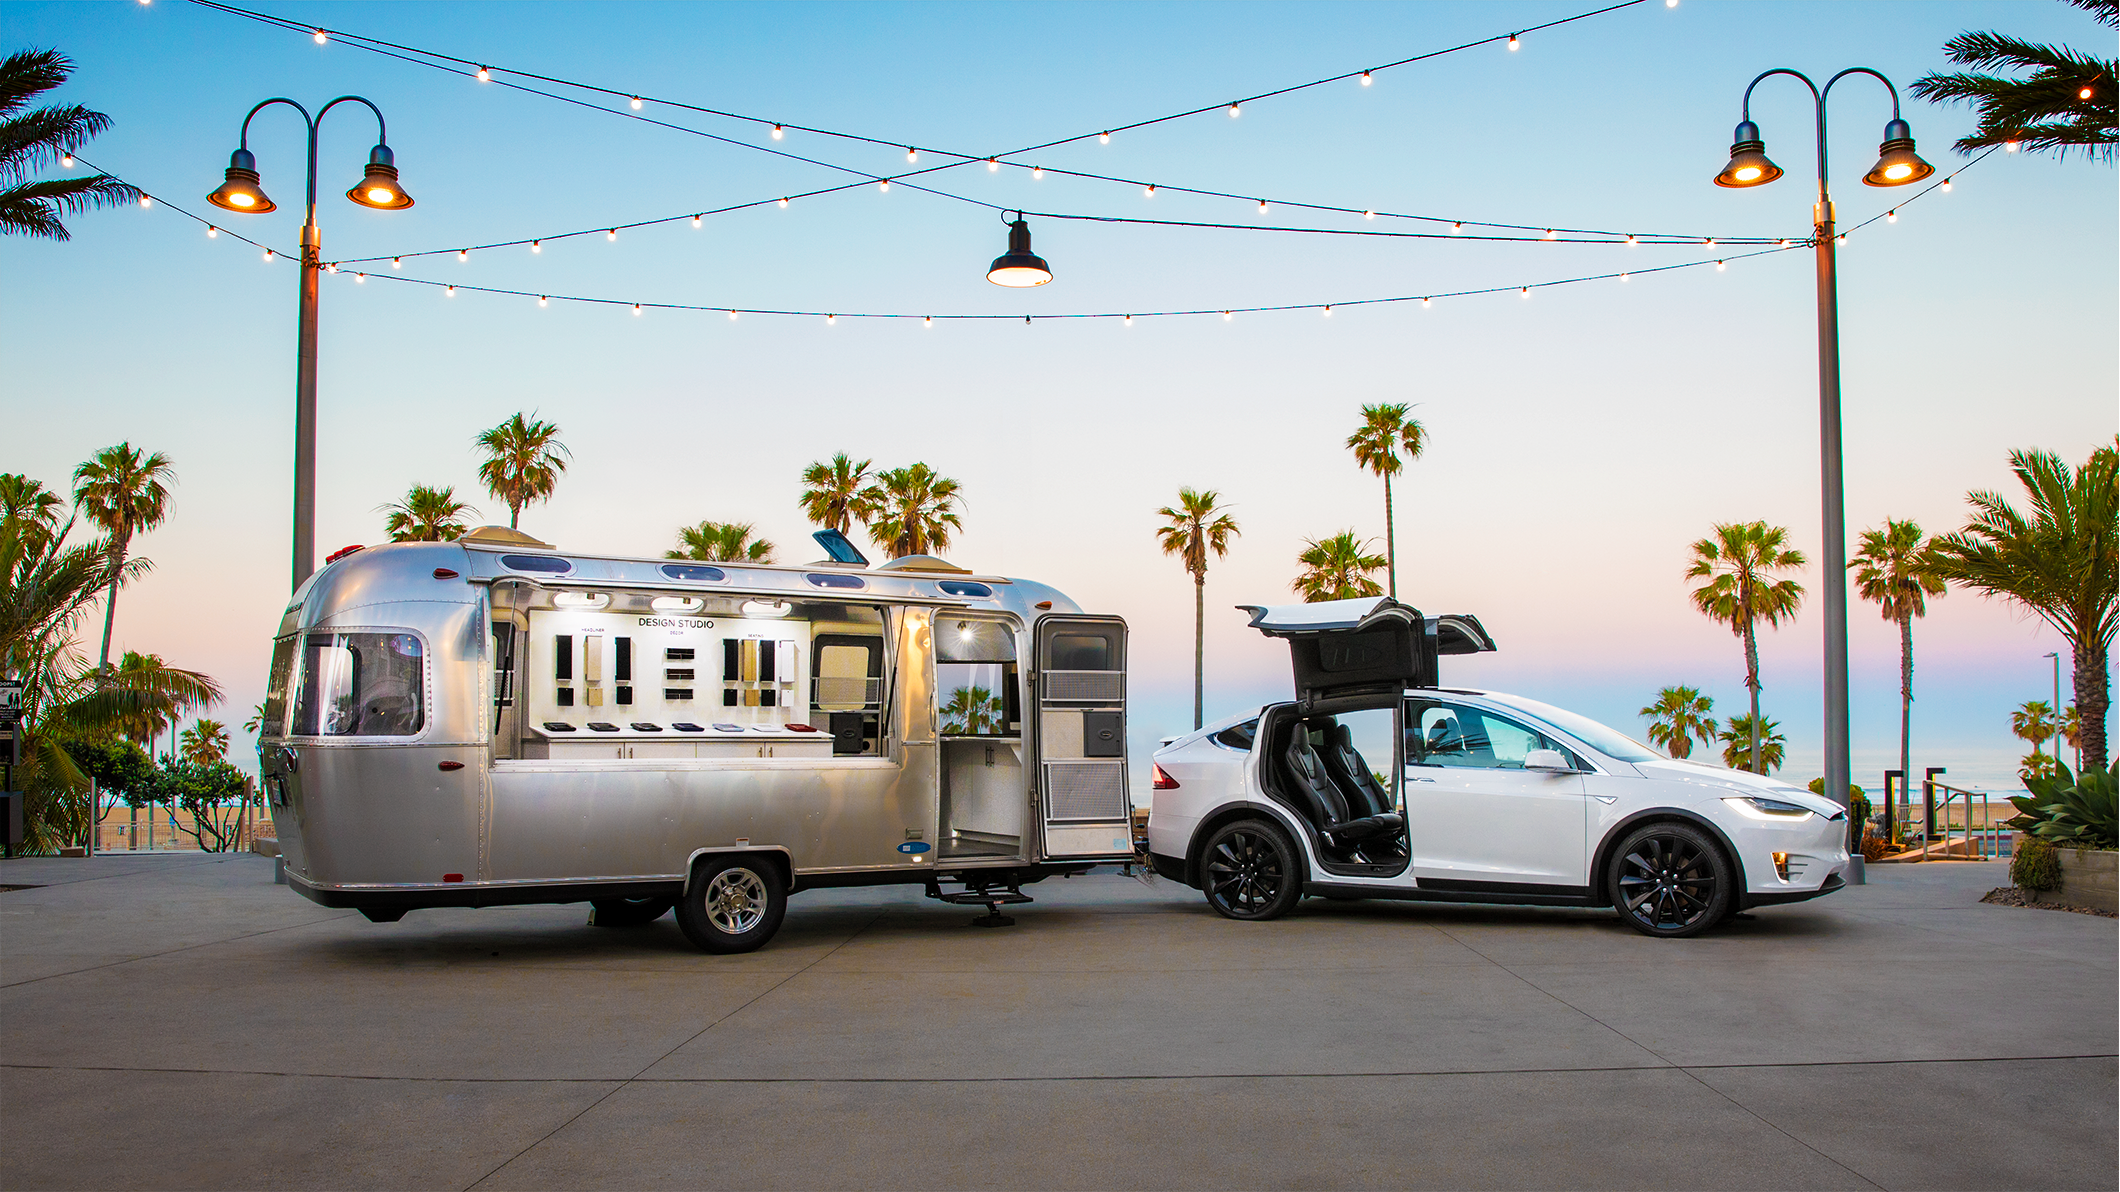 Tesla Batteries 101 Production Capacity Uses Chemistry Future Electrical System For A Class Motorhome Where Part Of The Plans Cleantechnica